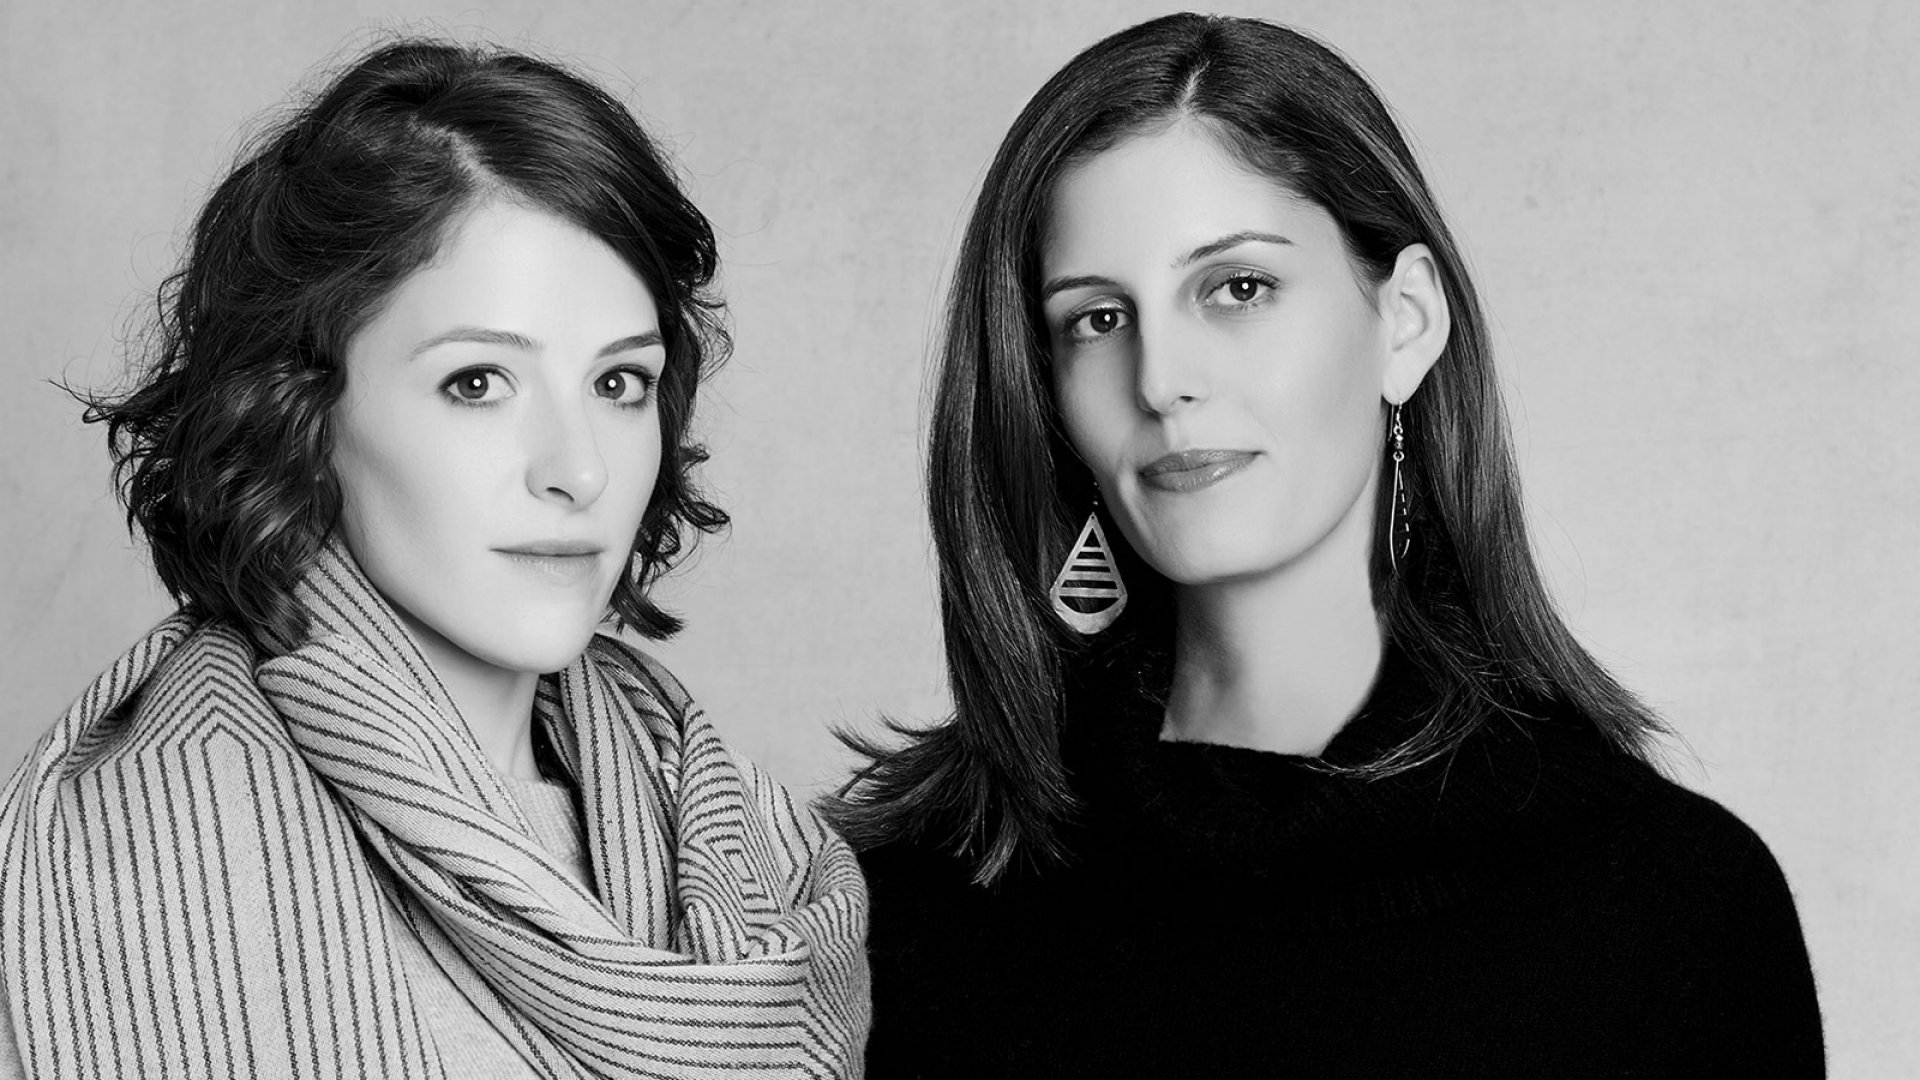 Hot on the heels of selling Foodspotting to OpenTable for $10 million, Soraya Darabi (pictured right) says she grappled with her next step before finally settling on launching Zady, a sustainable clothing and accessories company. Her co-founder in the project is Maxine Bedat (left).